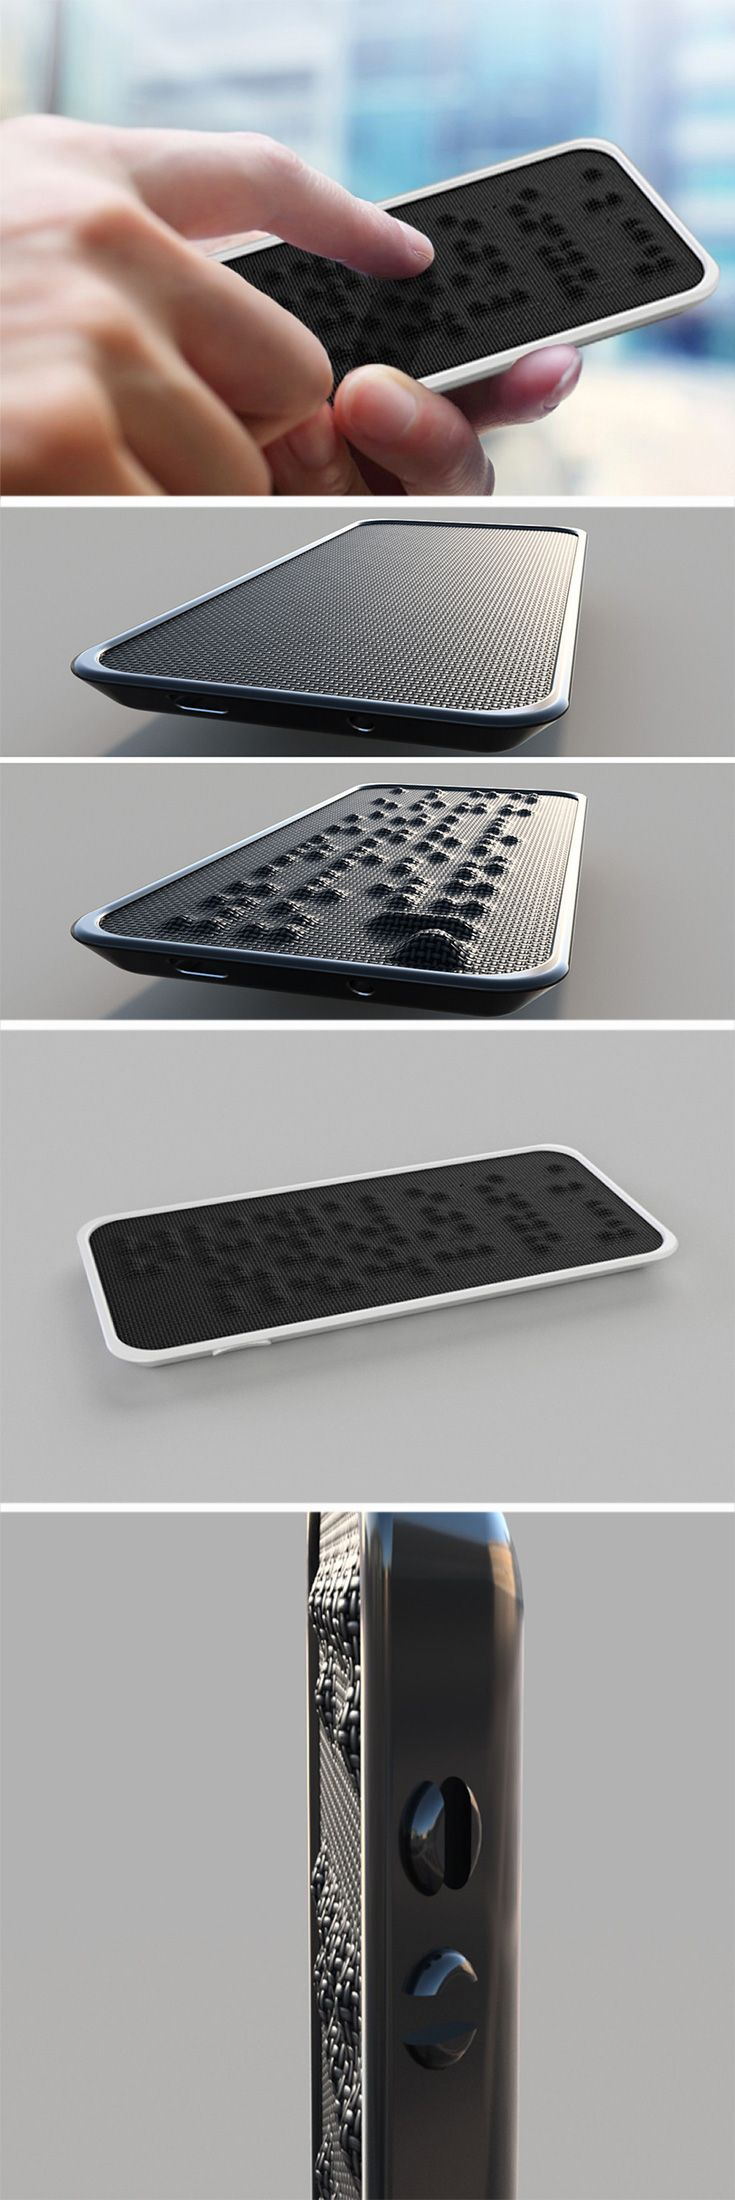 Touchscreens are probably the WORST interface for the visually impaired, that is why the Textura brings a screen replacement surface that is made for braille, along with a classy, sleek design to the